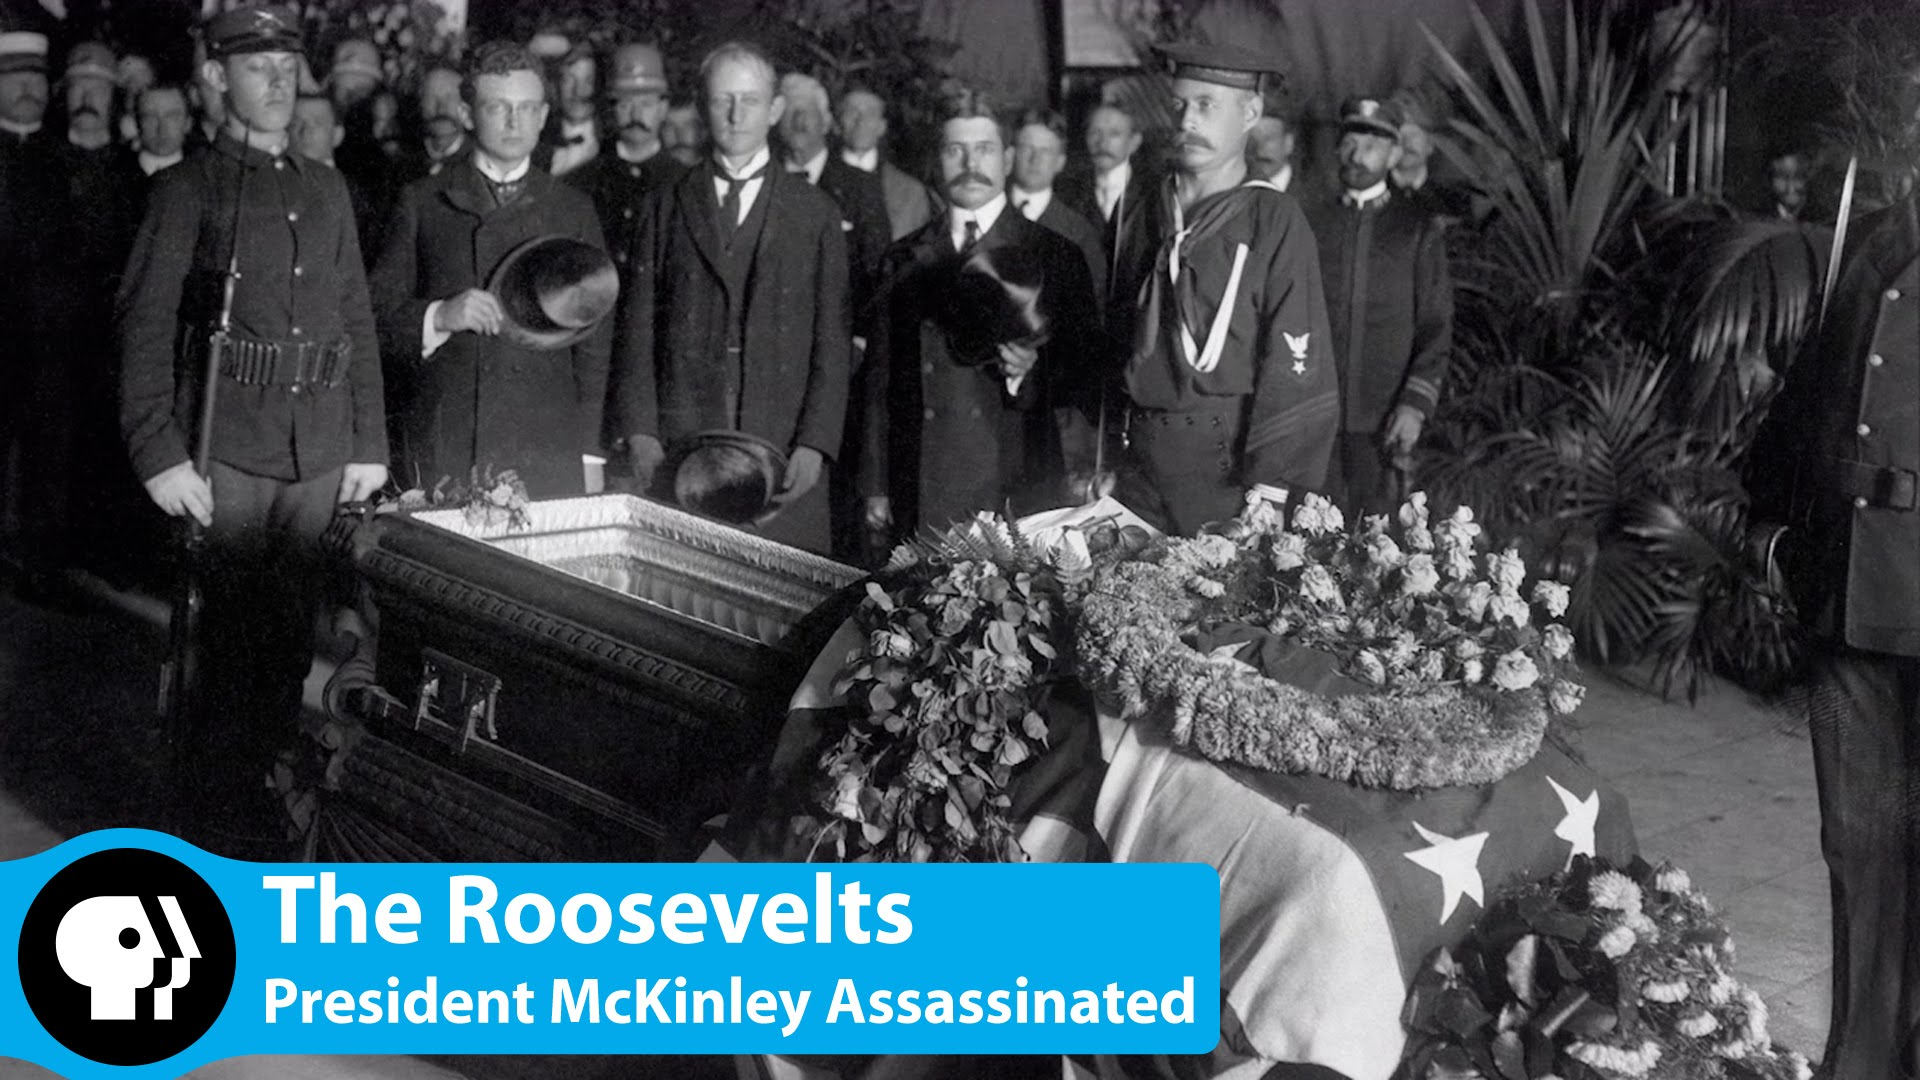 Theodore Roosevelt - McKinley Assassination